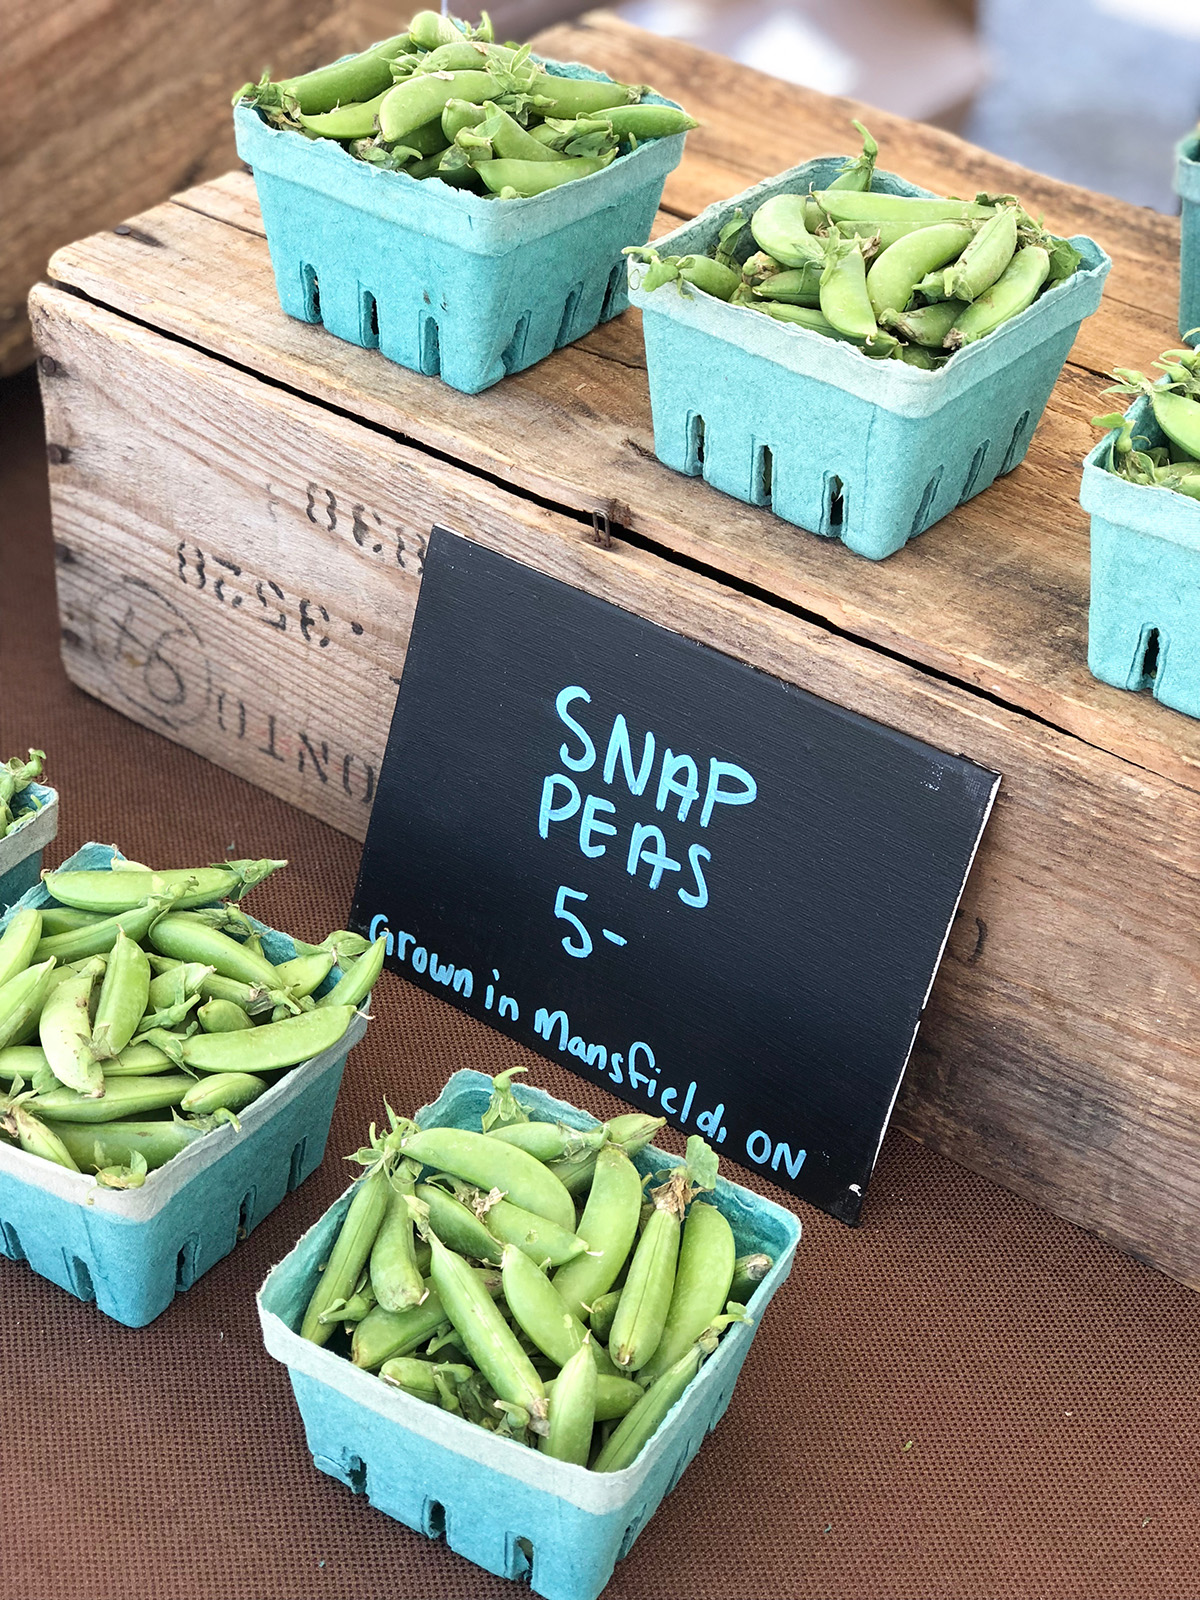 peas at the market